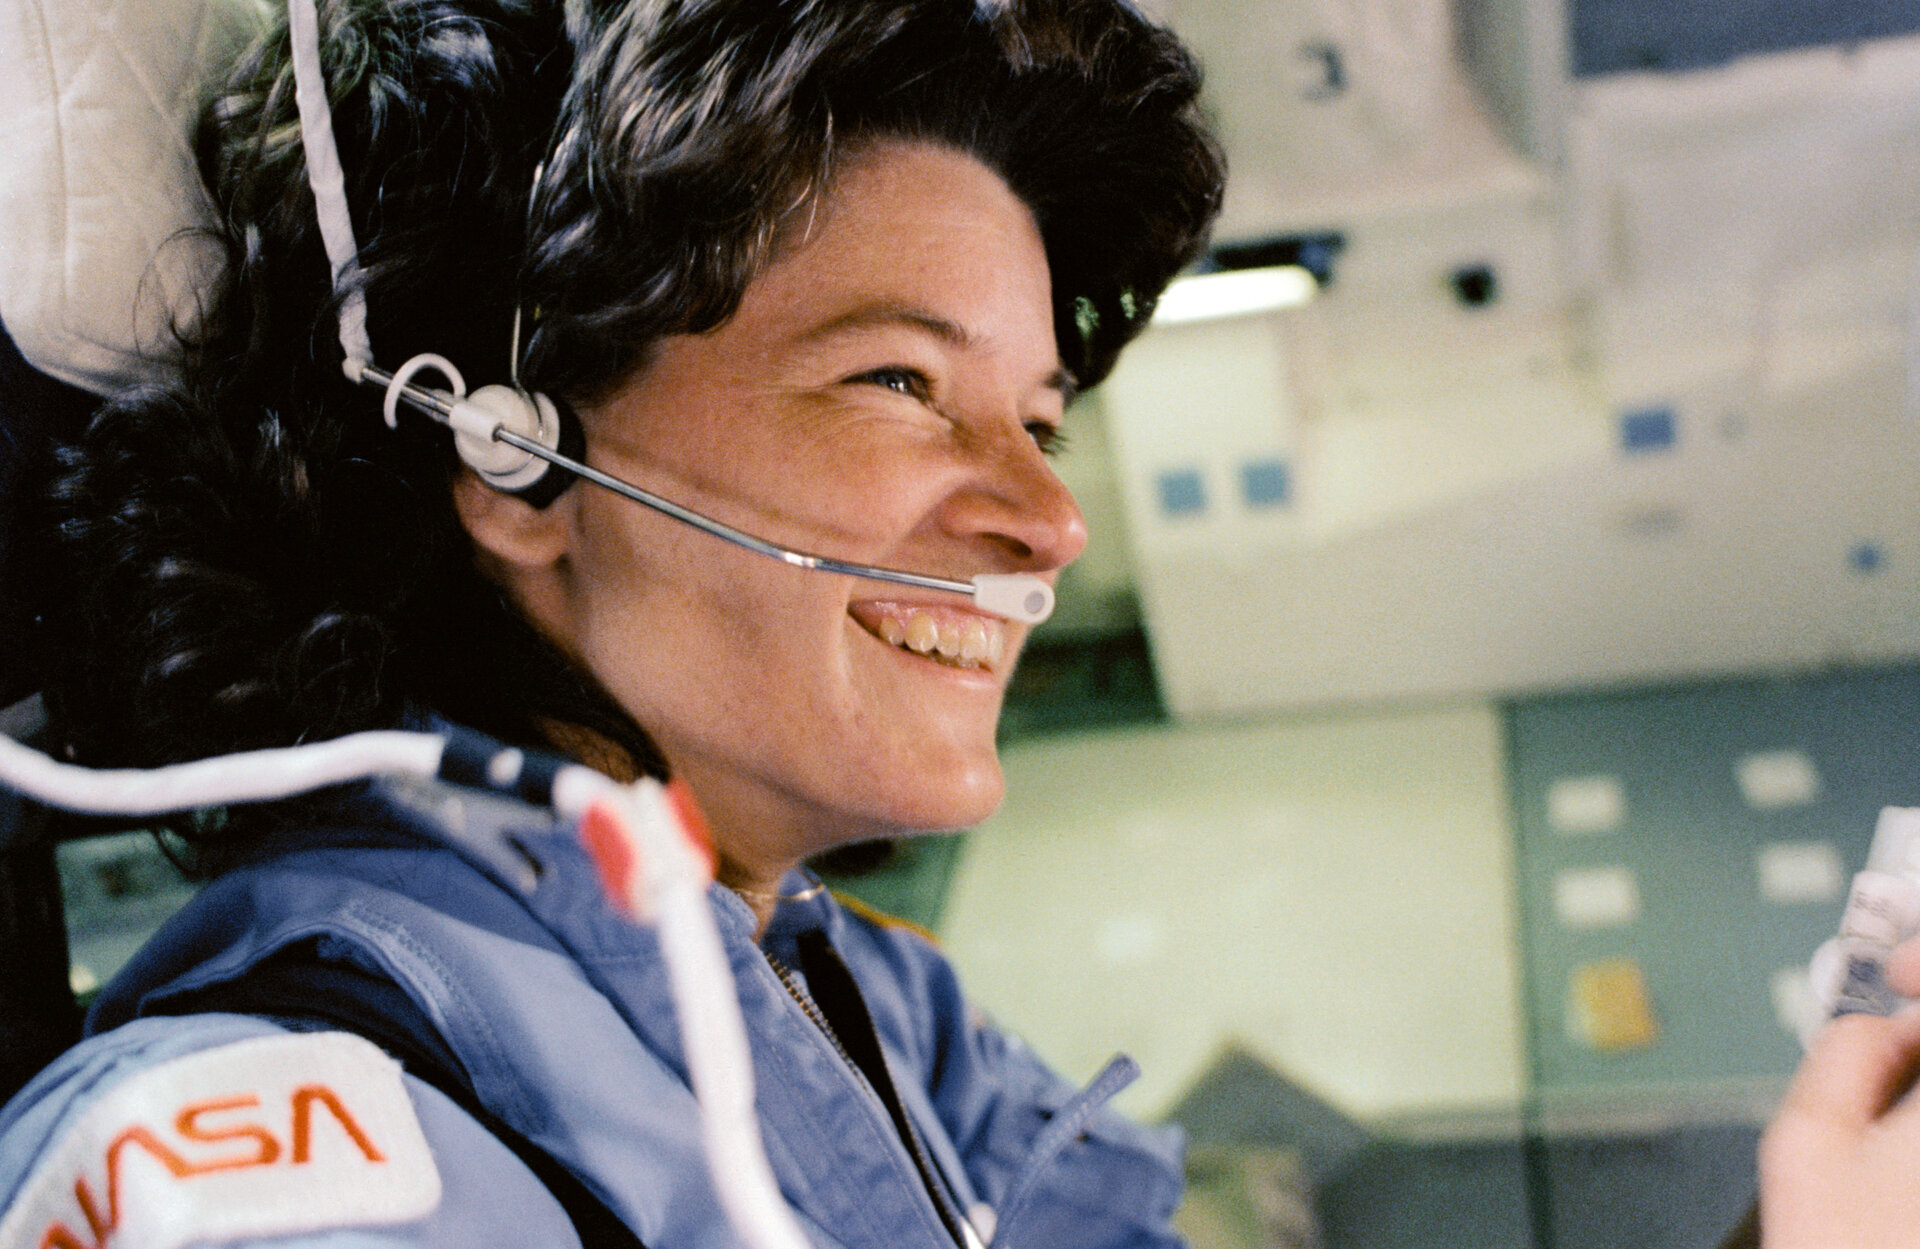 NASA astronaut Sally Ride, first American woman in space